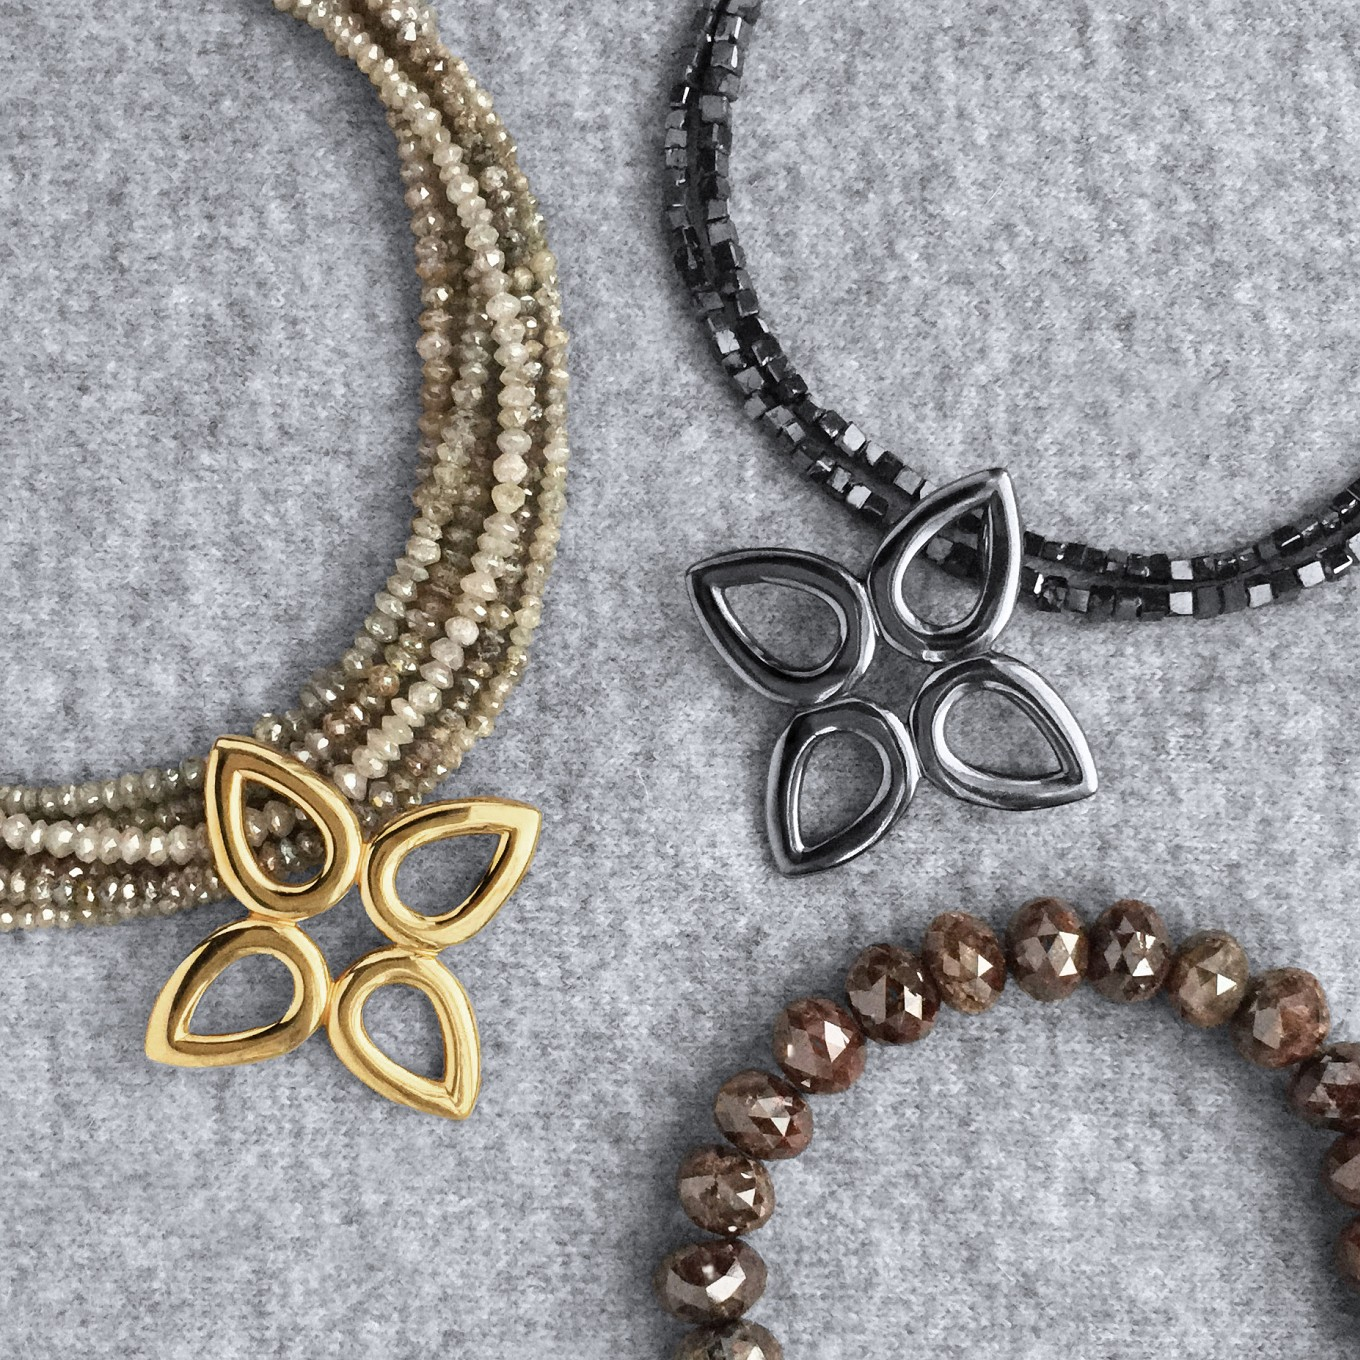 BROWN, BLACK & CHAMPAGNE FANCY COLOURED FACETED DIAMOND NECKLACES SHOWN WITH SEVILLA MOTIFS<br/>PRICE ON REQUEST